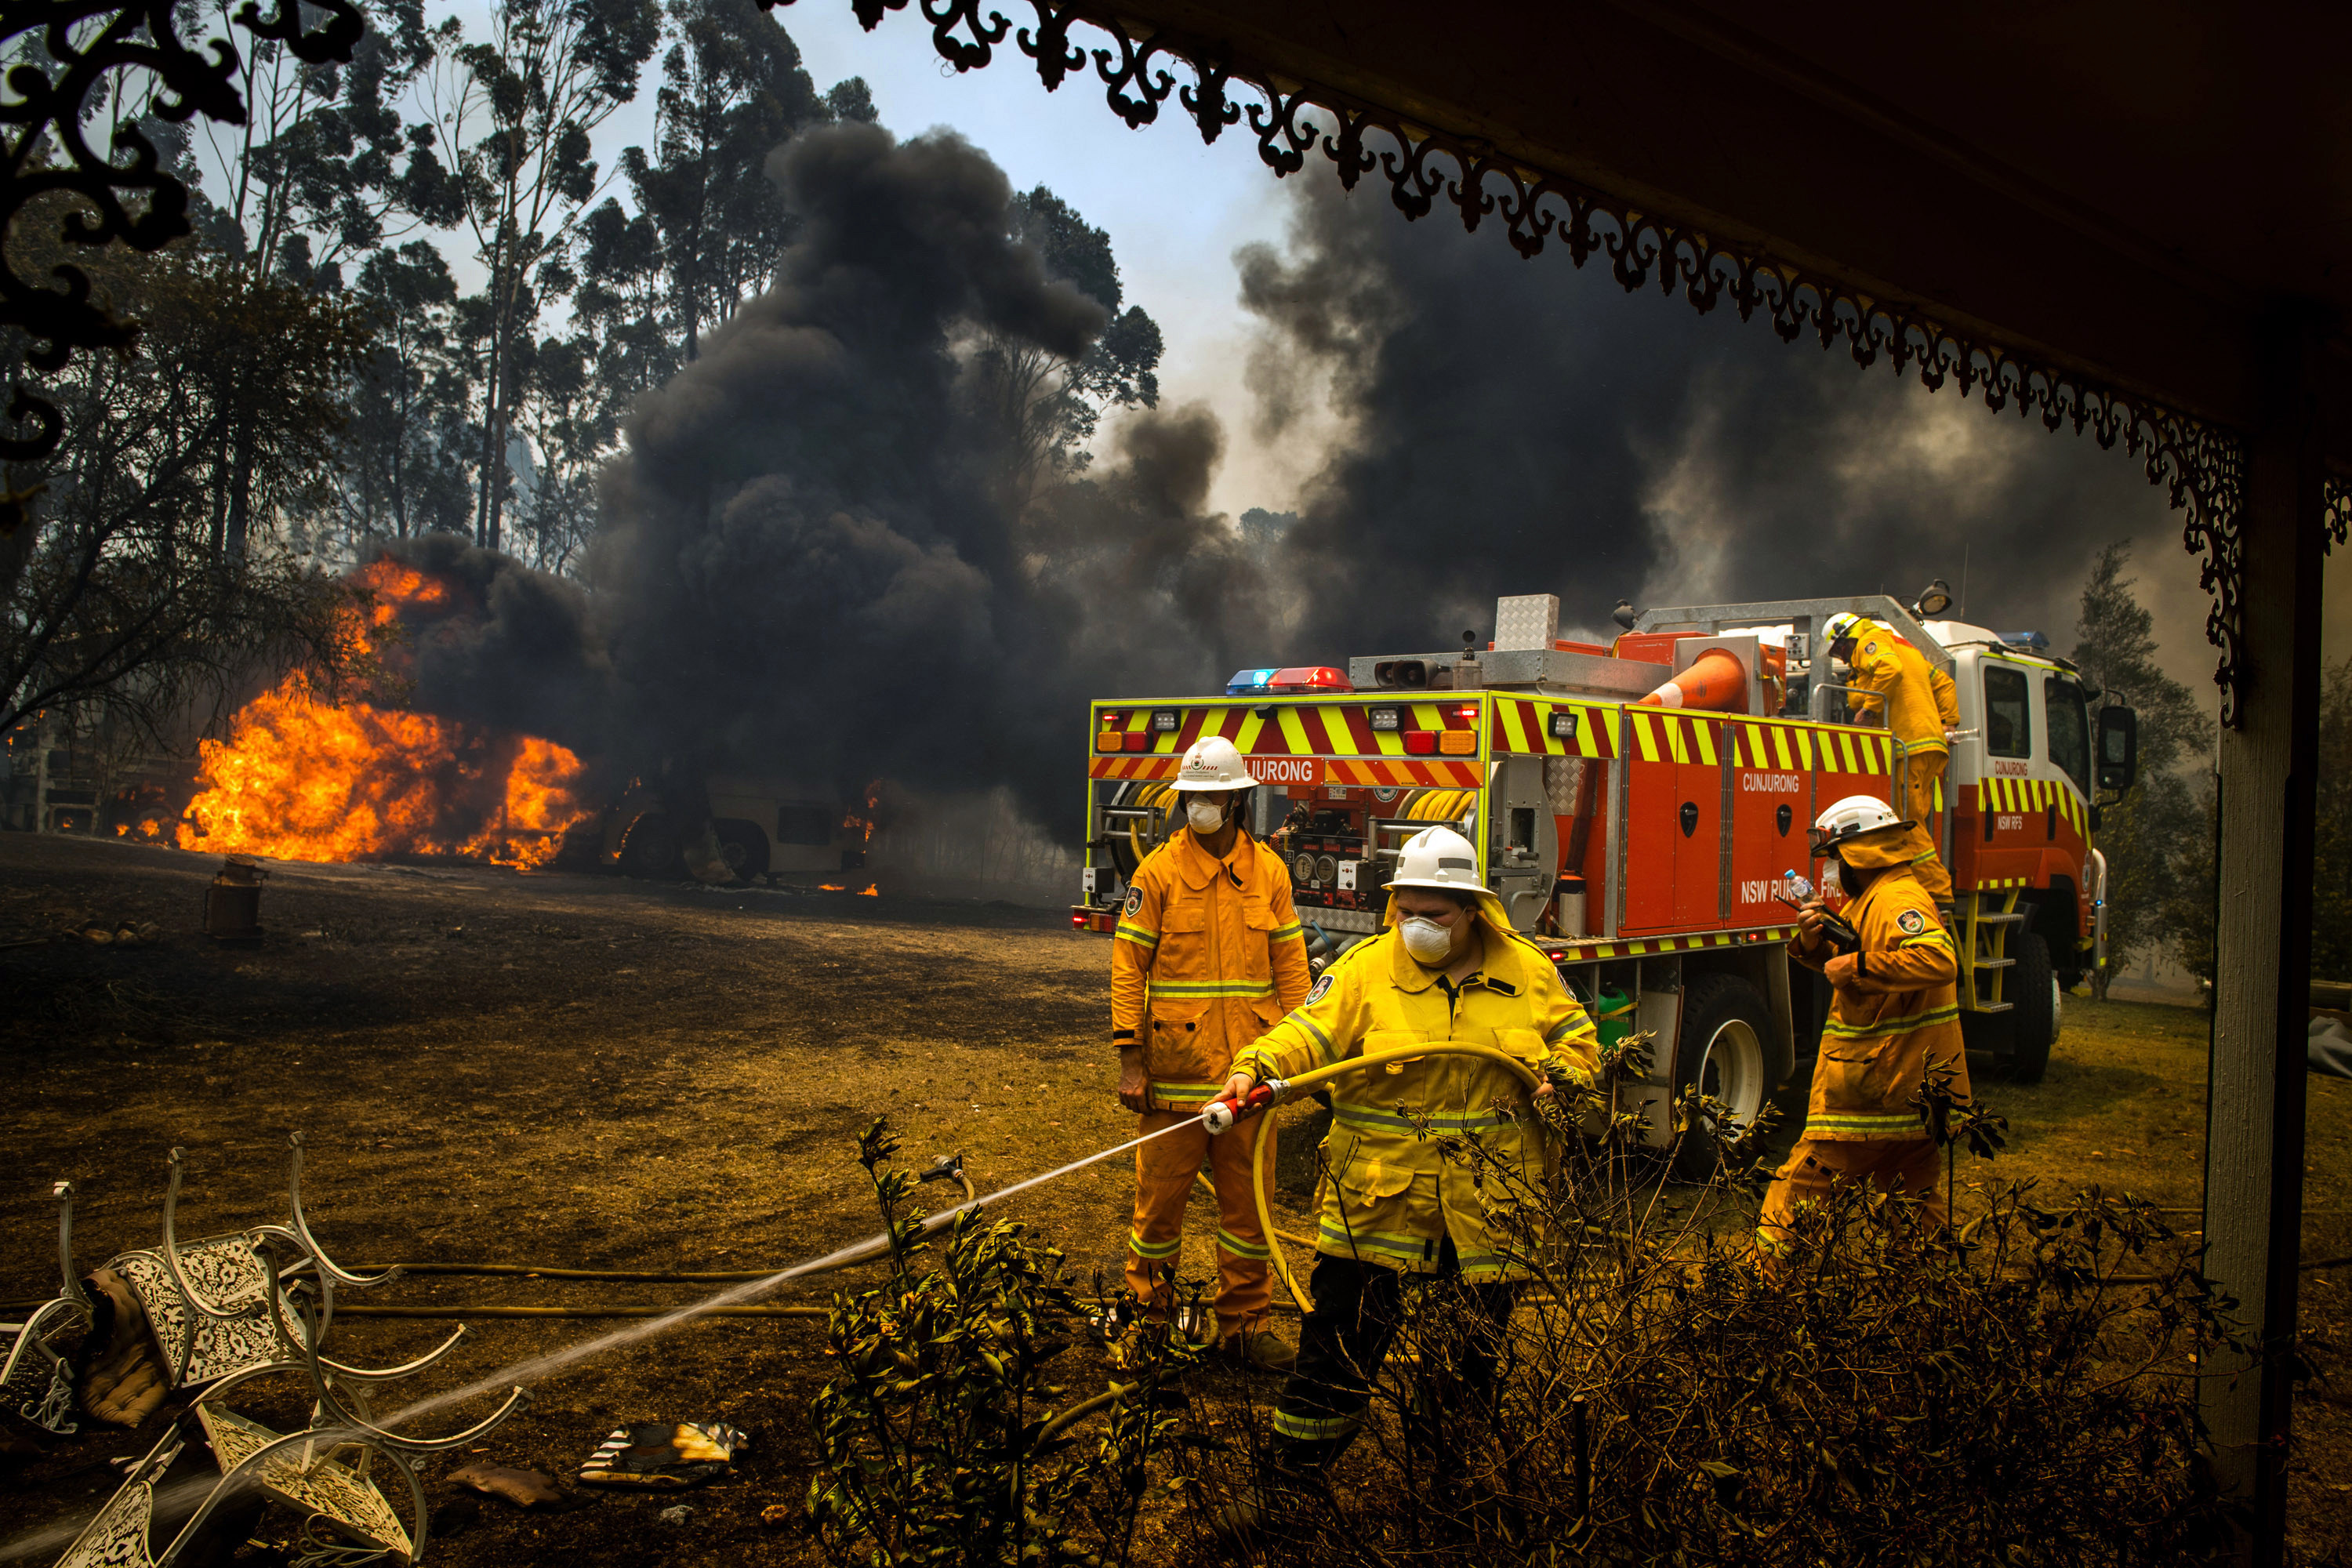 Thousands of firefighters have worked tirelessly through Christmas and New Year's in an effort to beat the flames